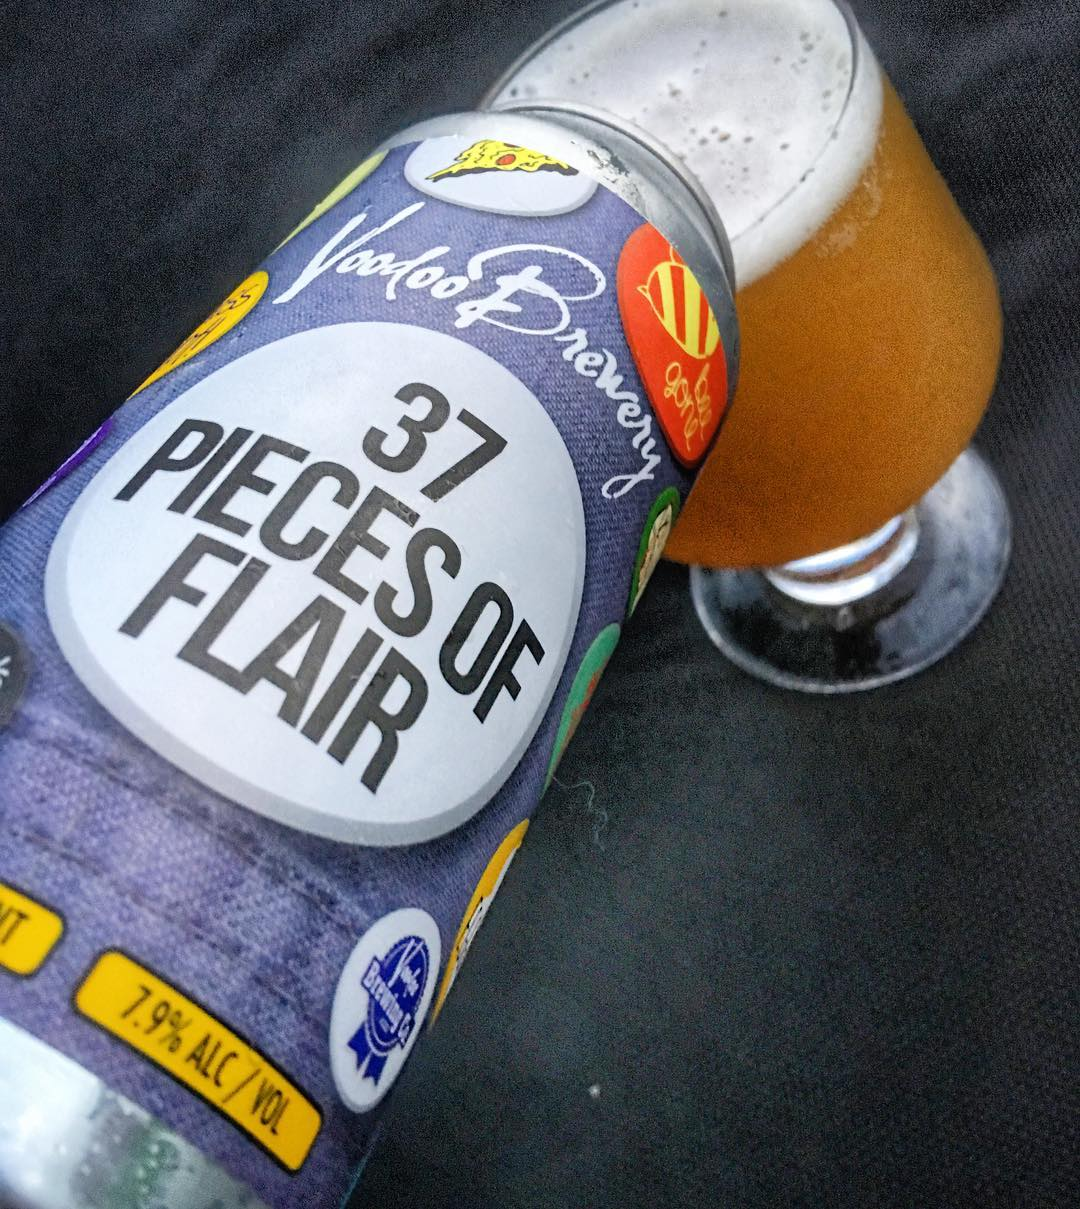 @voodoobrewery 37 pieces of flair IPA